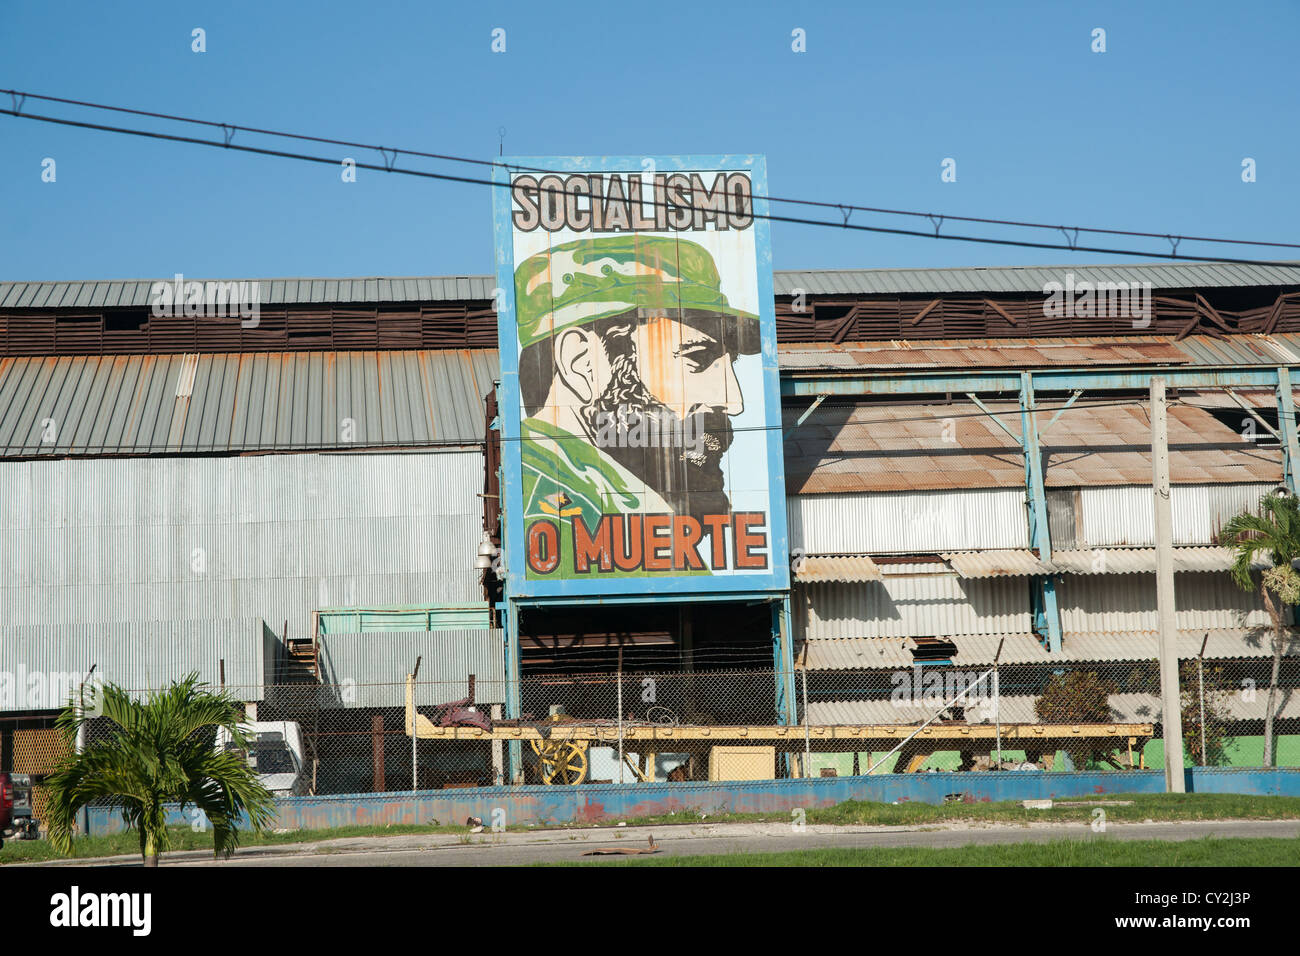 Revolutionary sign of Fidel Castro in Havana, Cuba. Translated the sign read 'socialism or death' - Stock Image